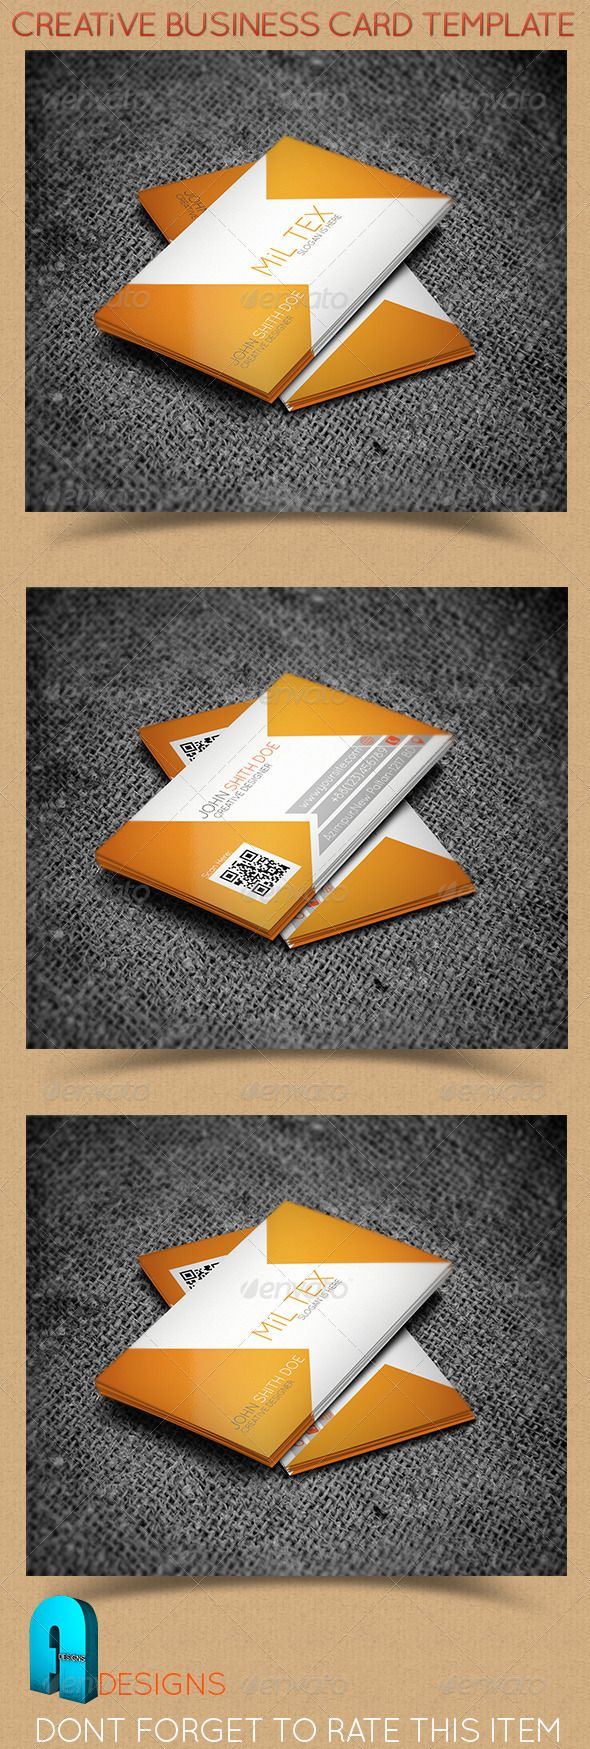 Creative Bussines Card Template